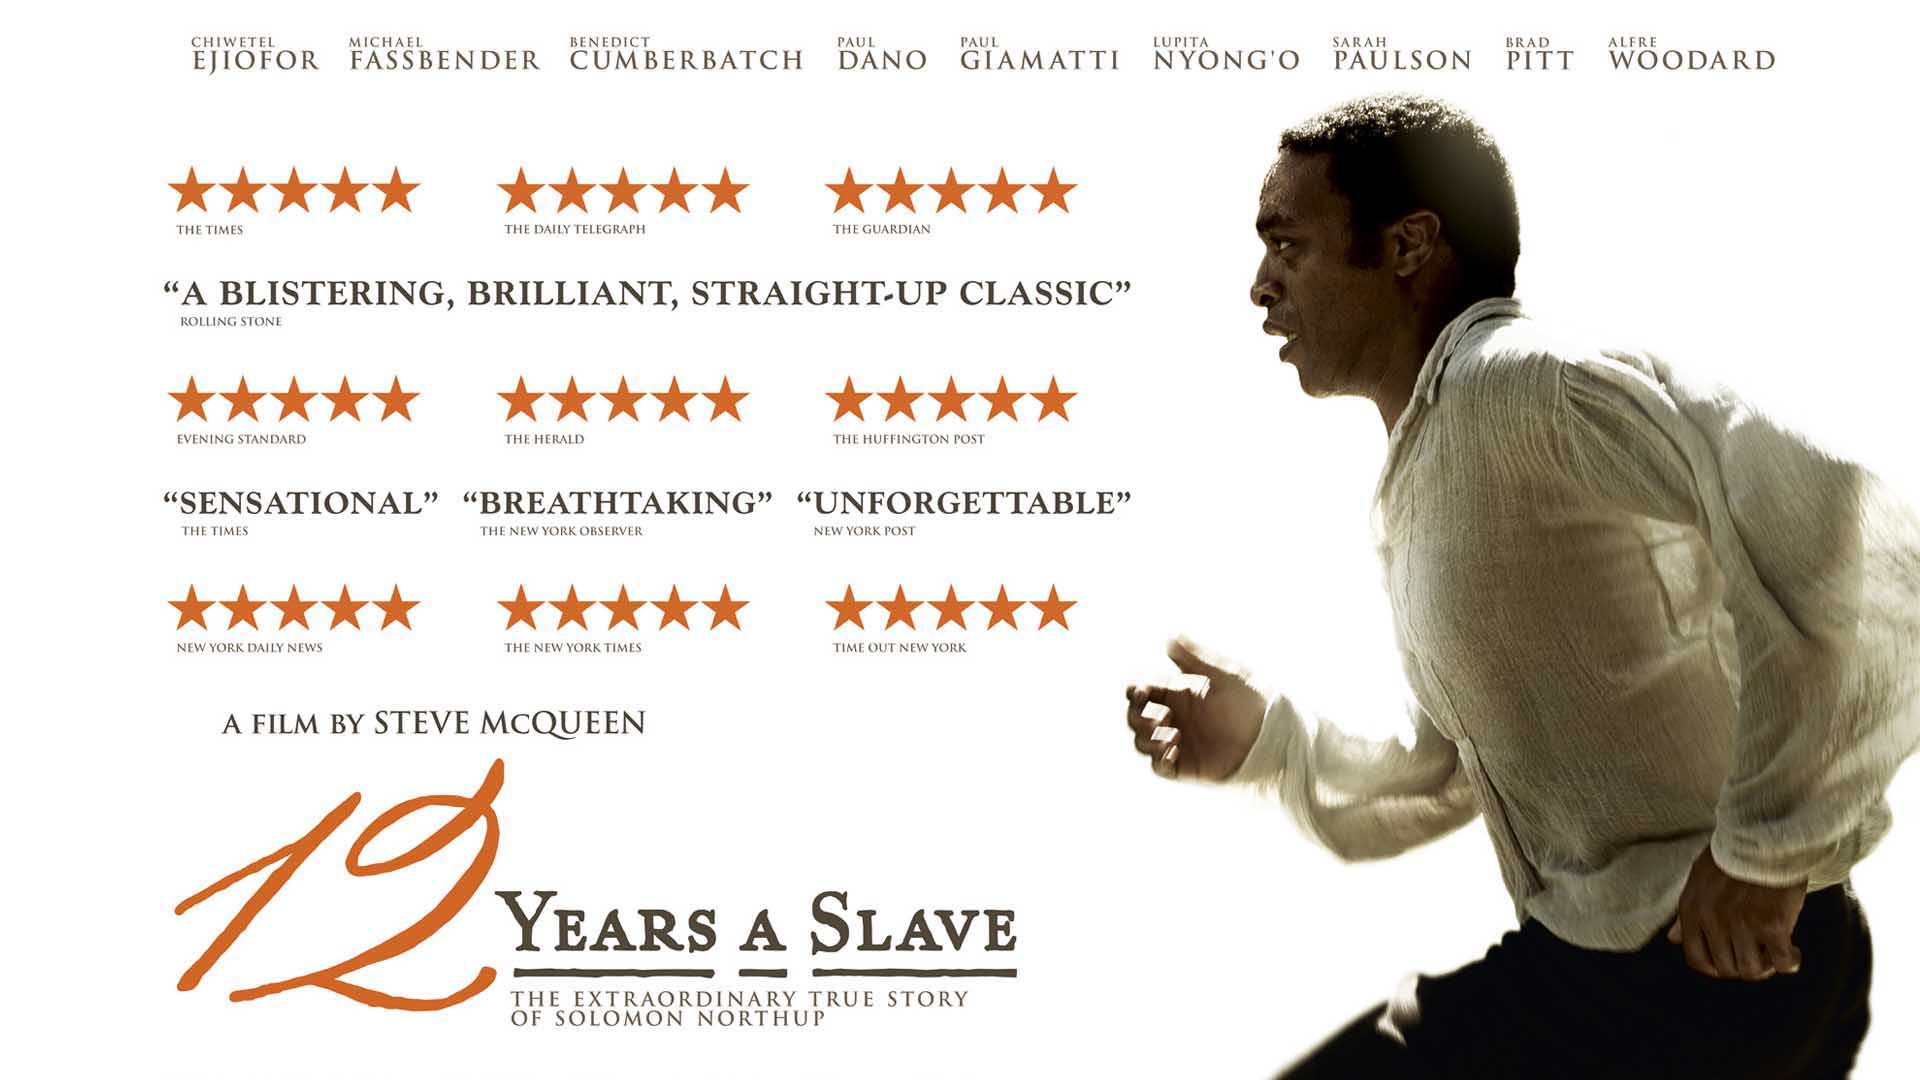 12 Years a Slave wallpaper 1